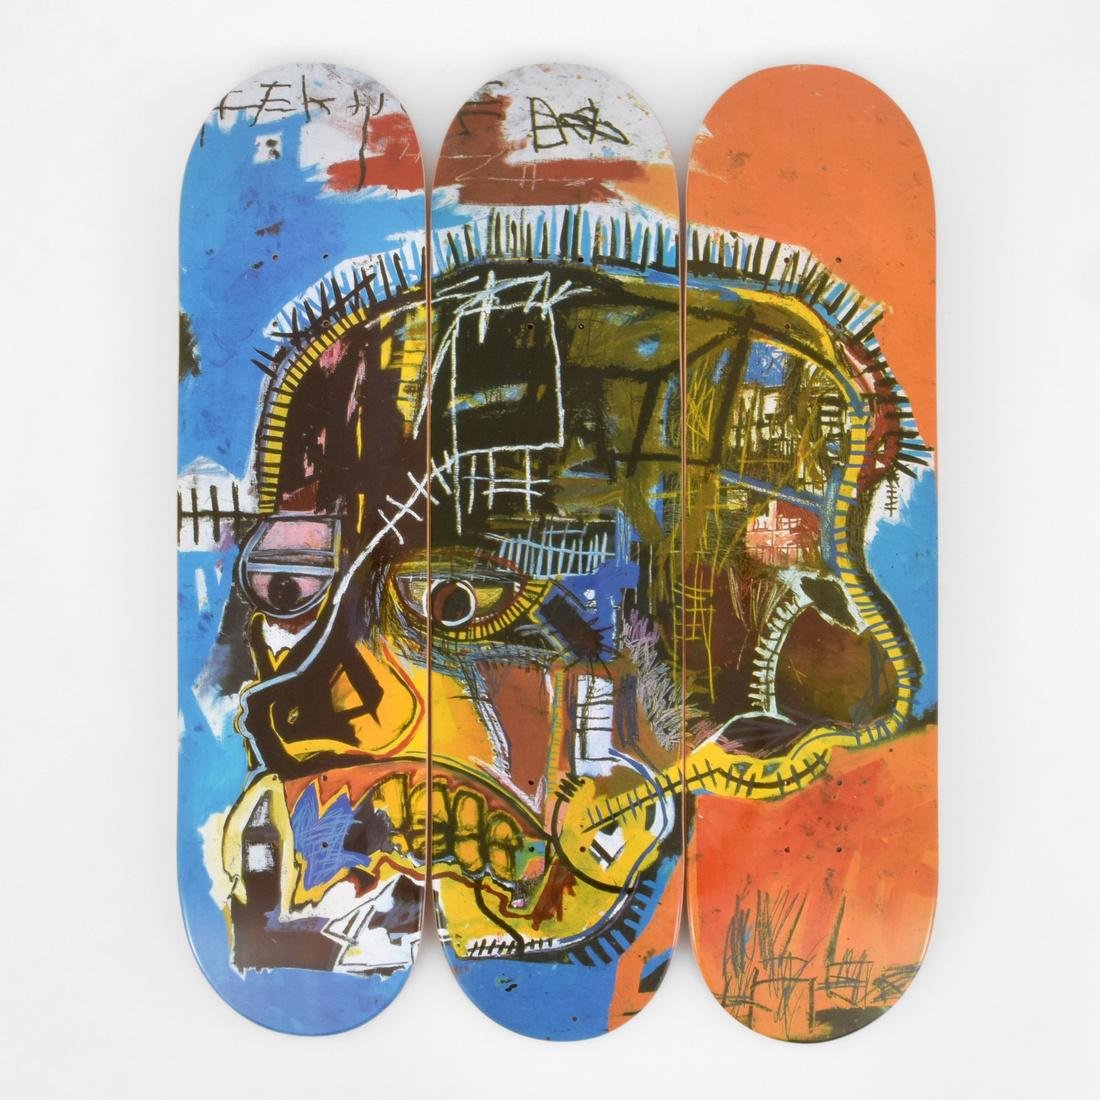 3 Jean-Michel Basquiat (after) Skateboard Decks